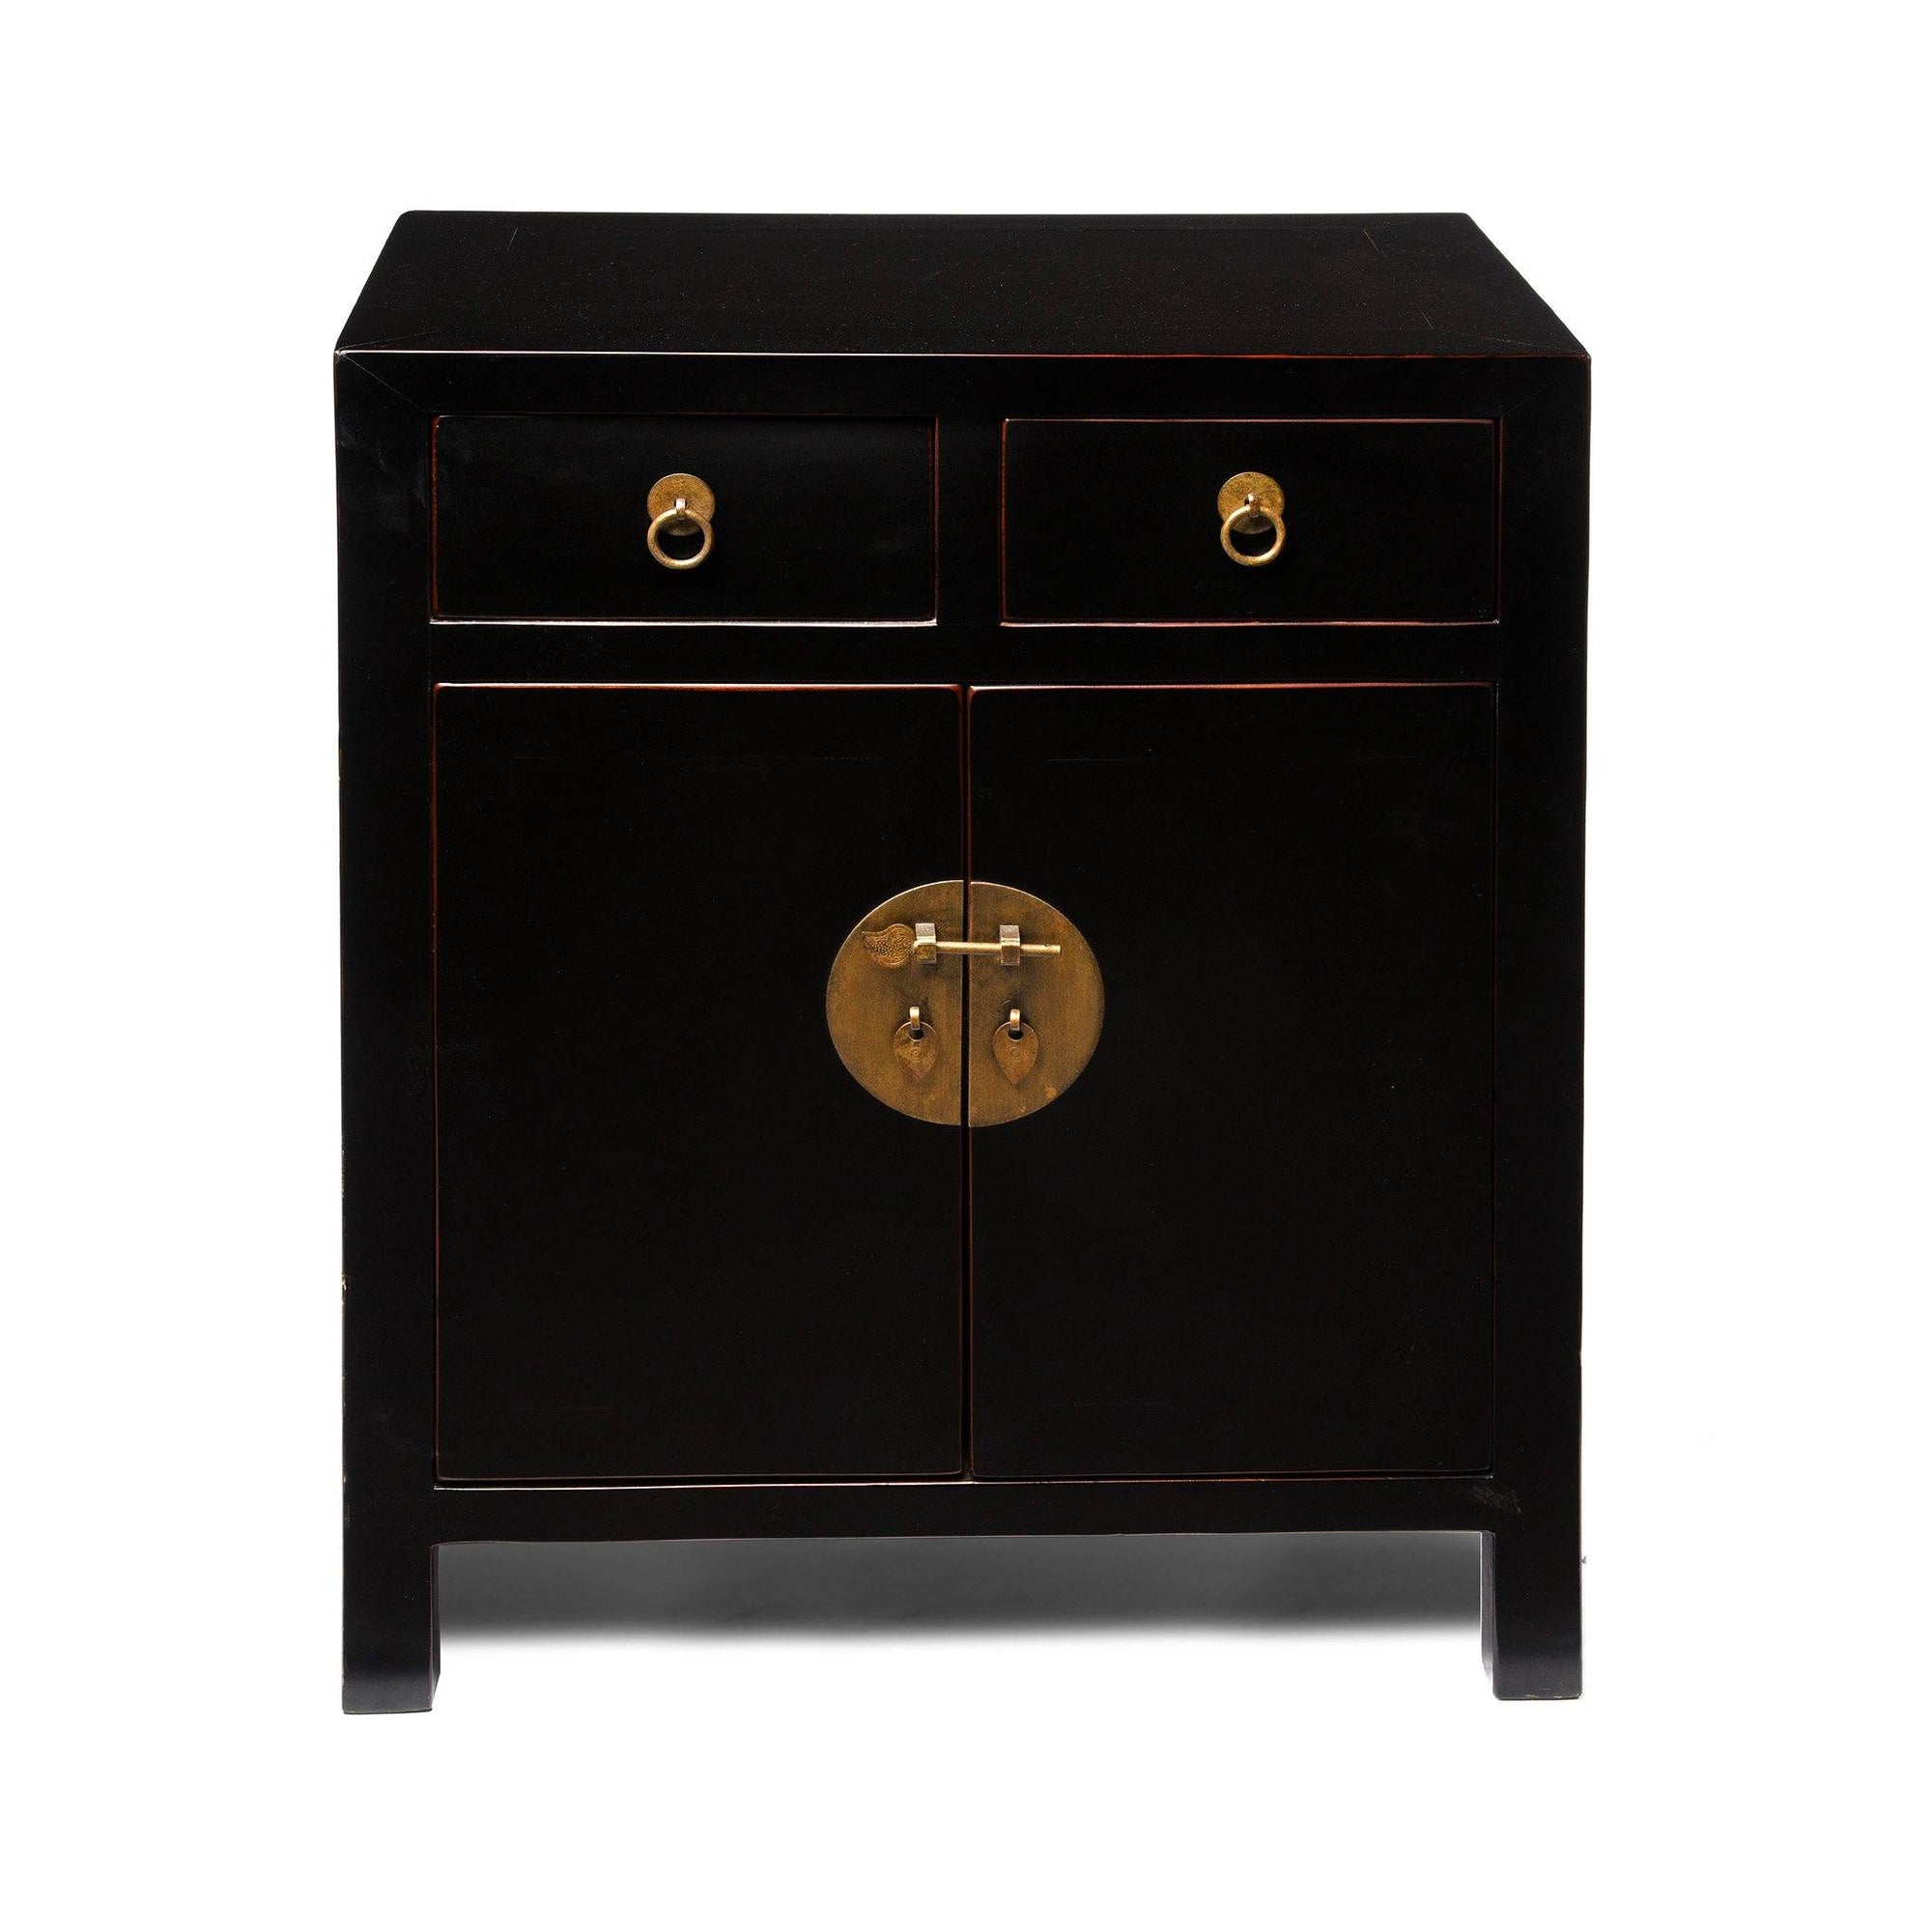 Chinese 2 Door Black Lacquer Cabinet | Indigo Antiques